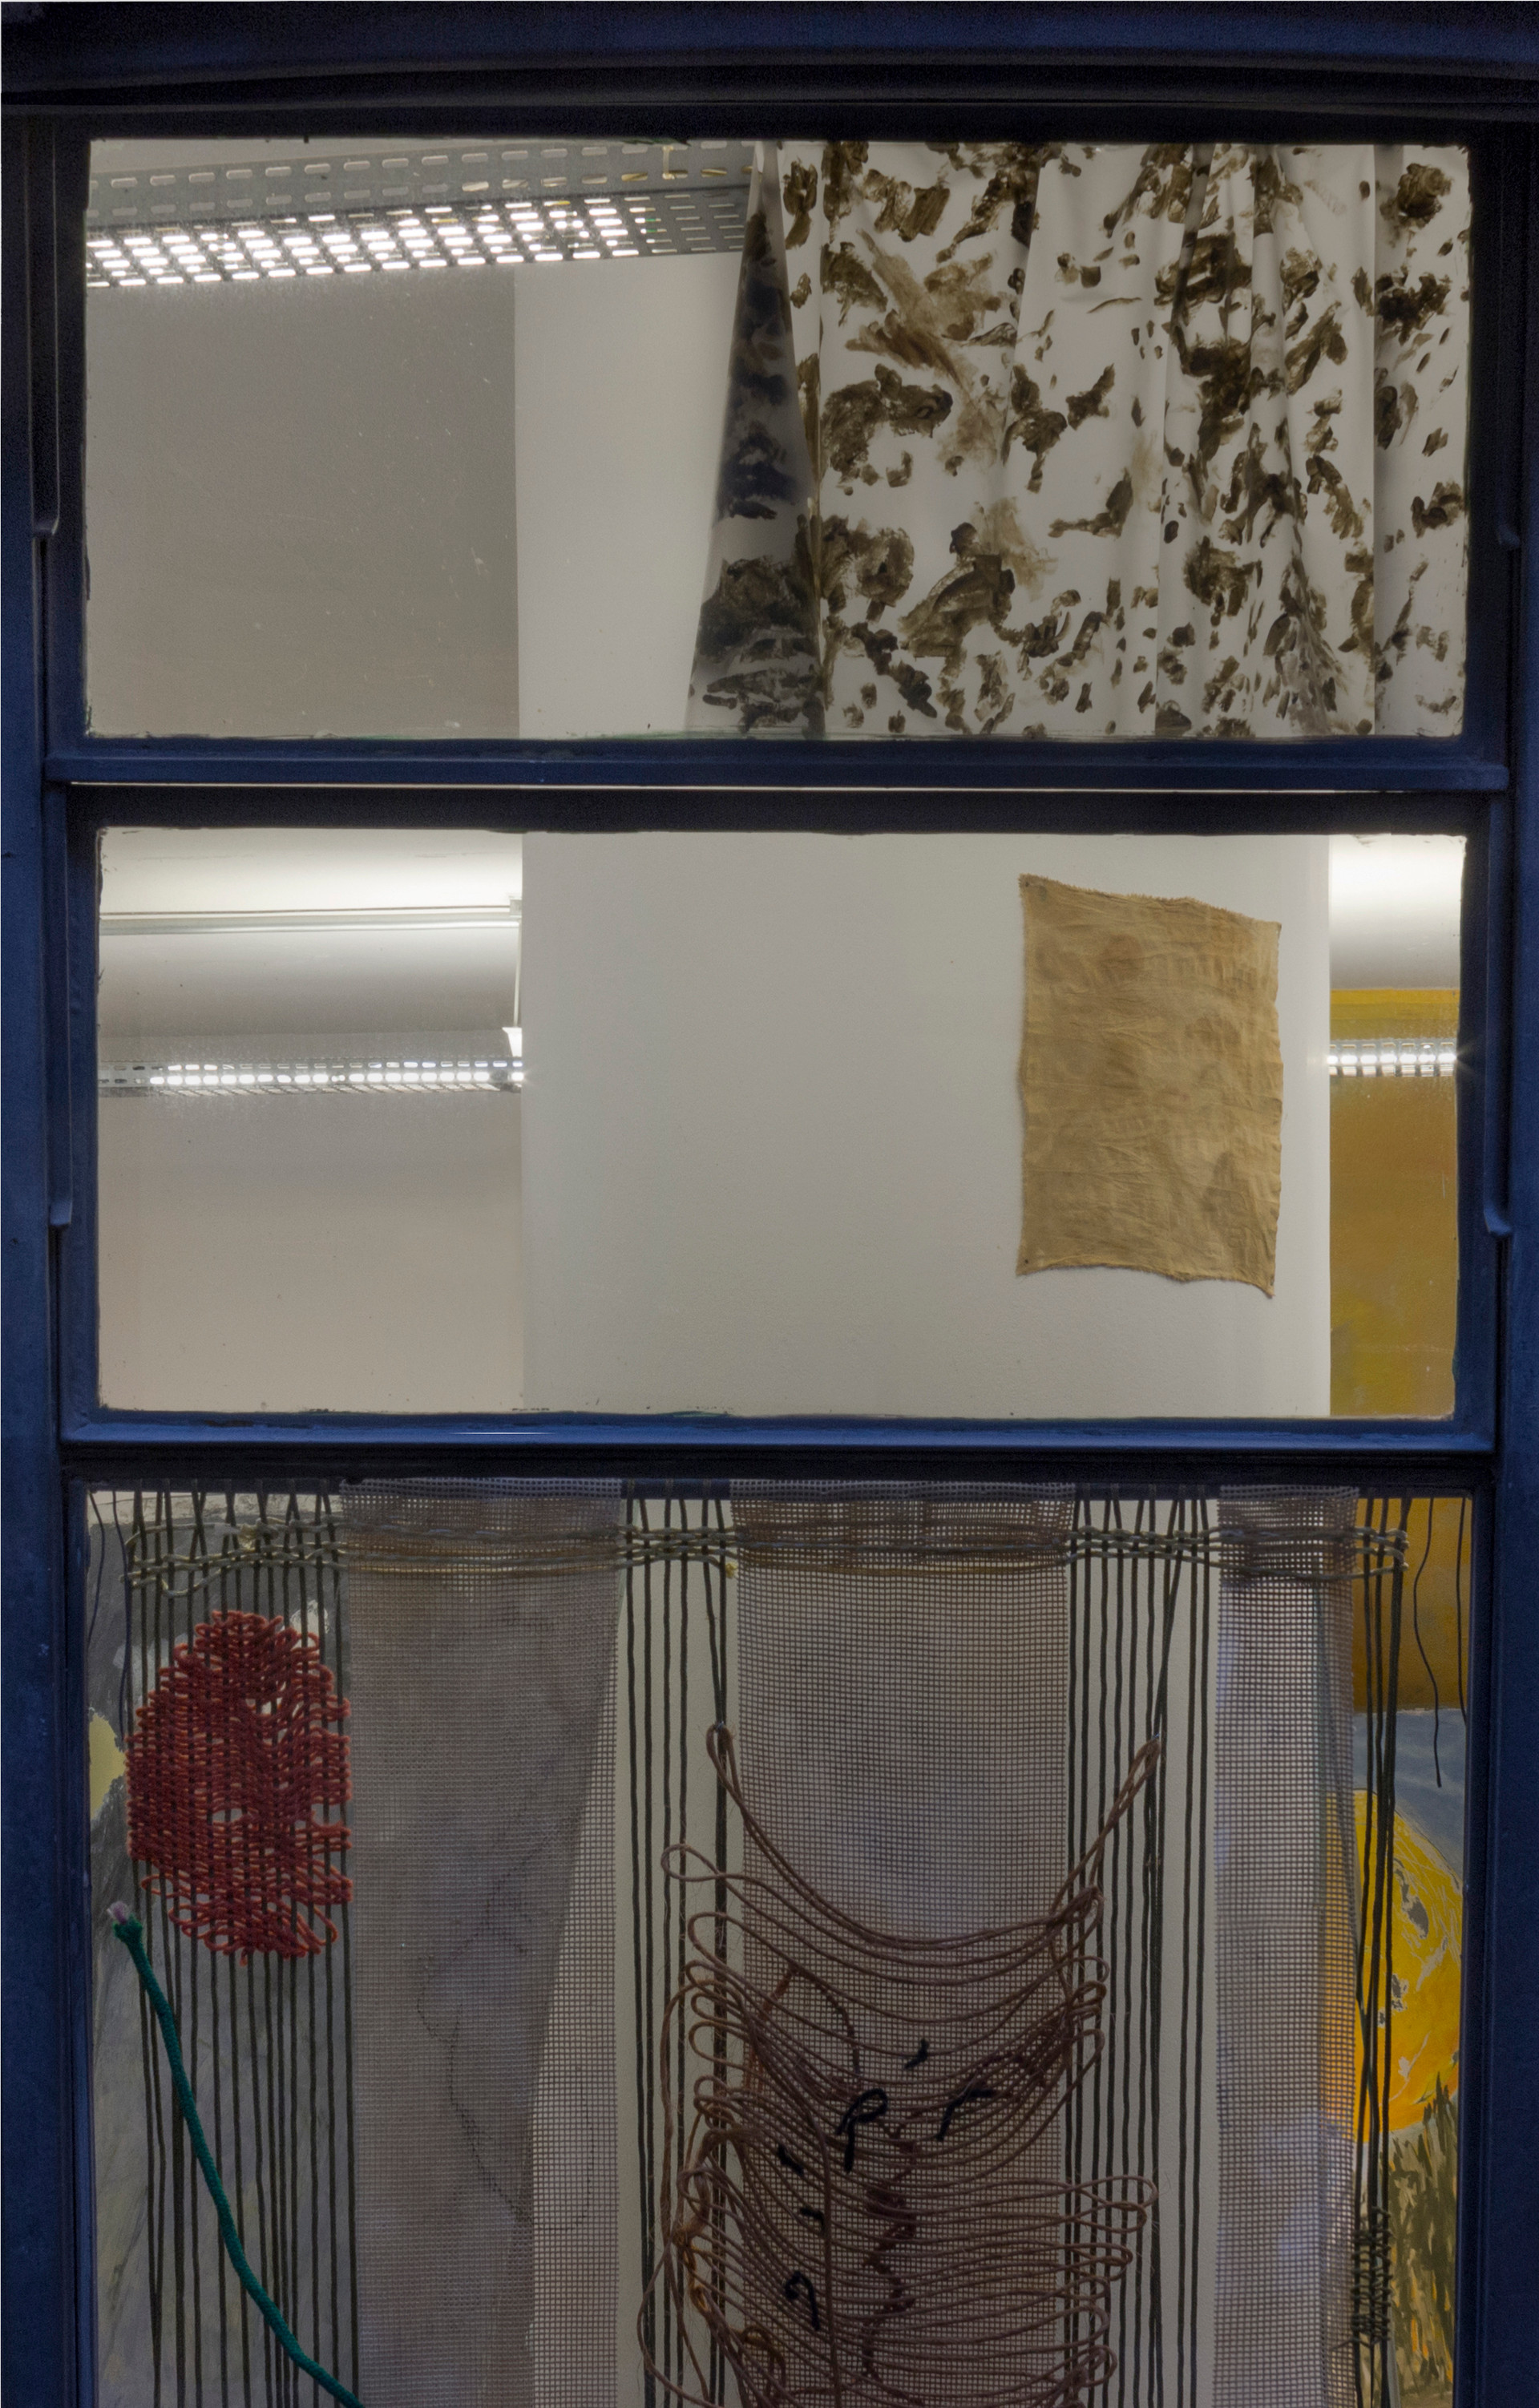 Curtain, 2018 Silicone sheet and enamel 44 x 110 cm